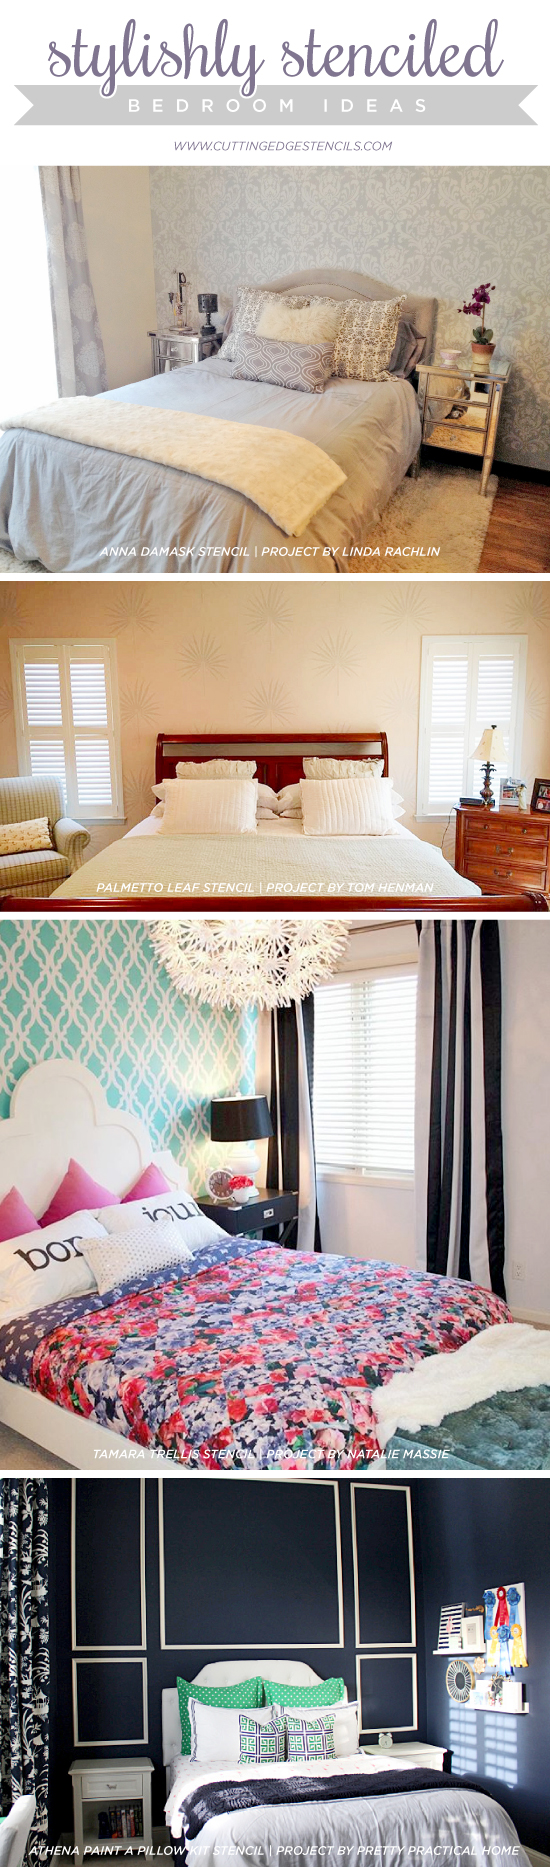 Cutting Edge Stencils shares DIY stenciled bedroom ideas. http://www.cuttingedgestencils.com/wall-stencils-stencil-designs.html